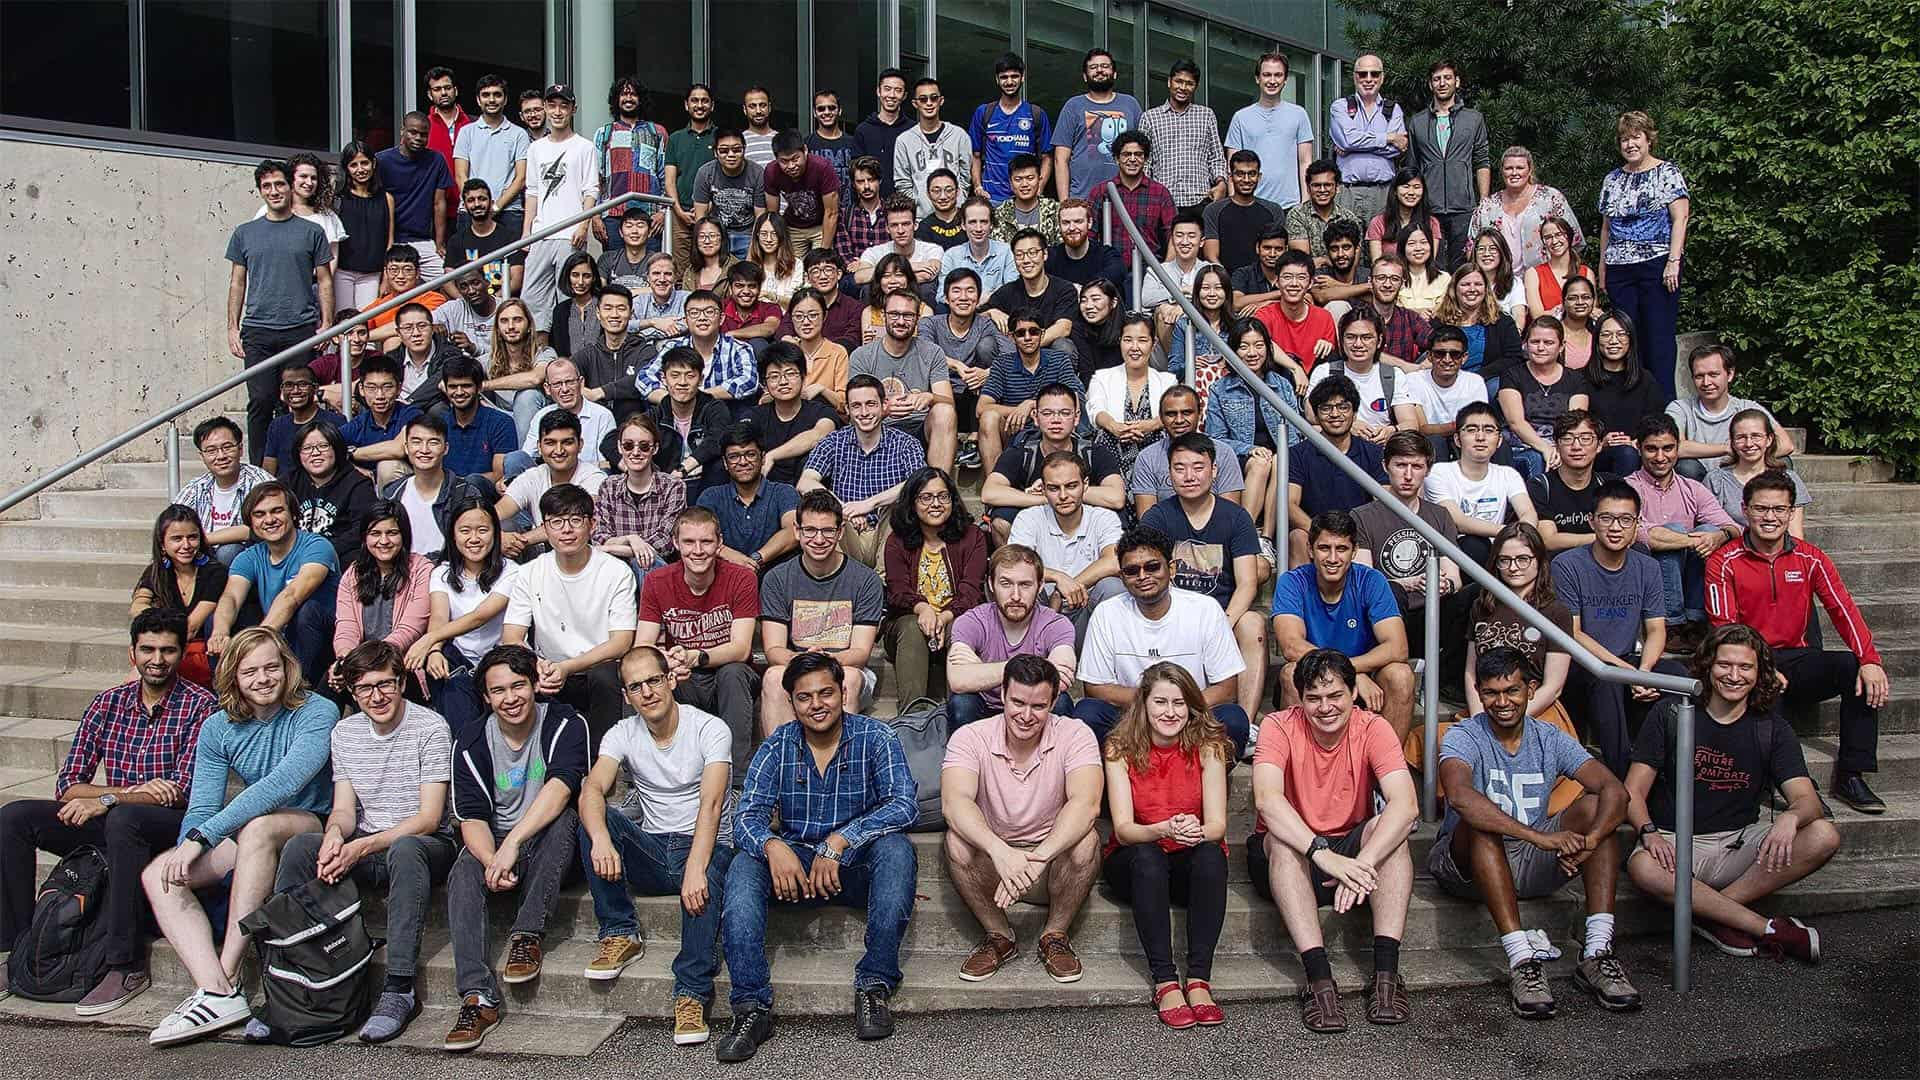 Members of the Machine Learning Department, including faculty, staff, and students.